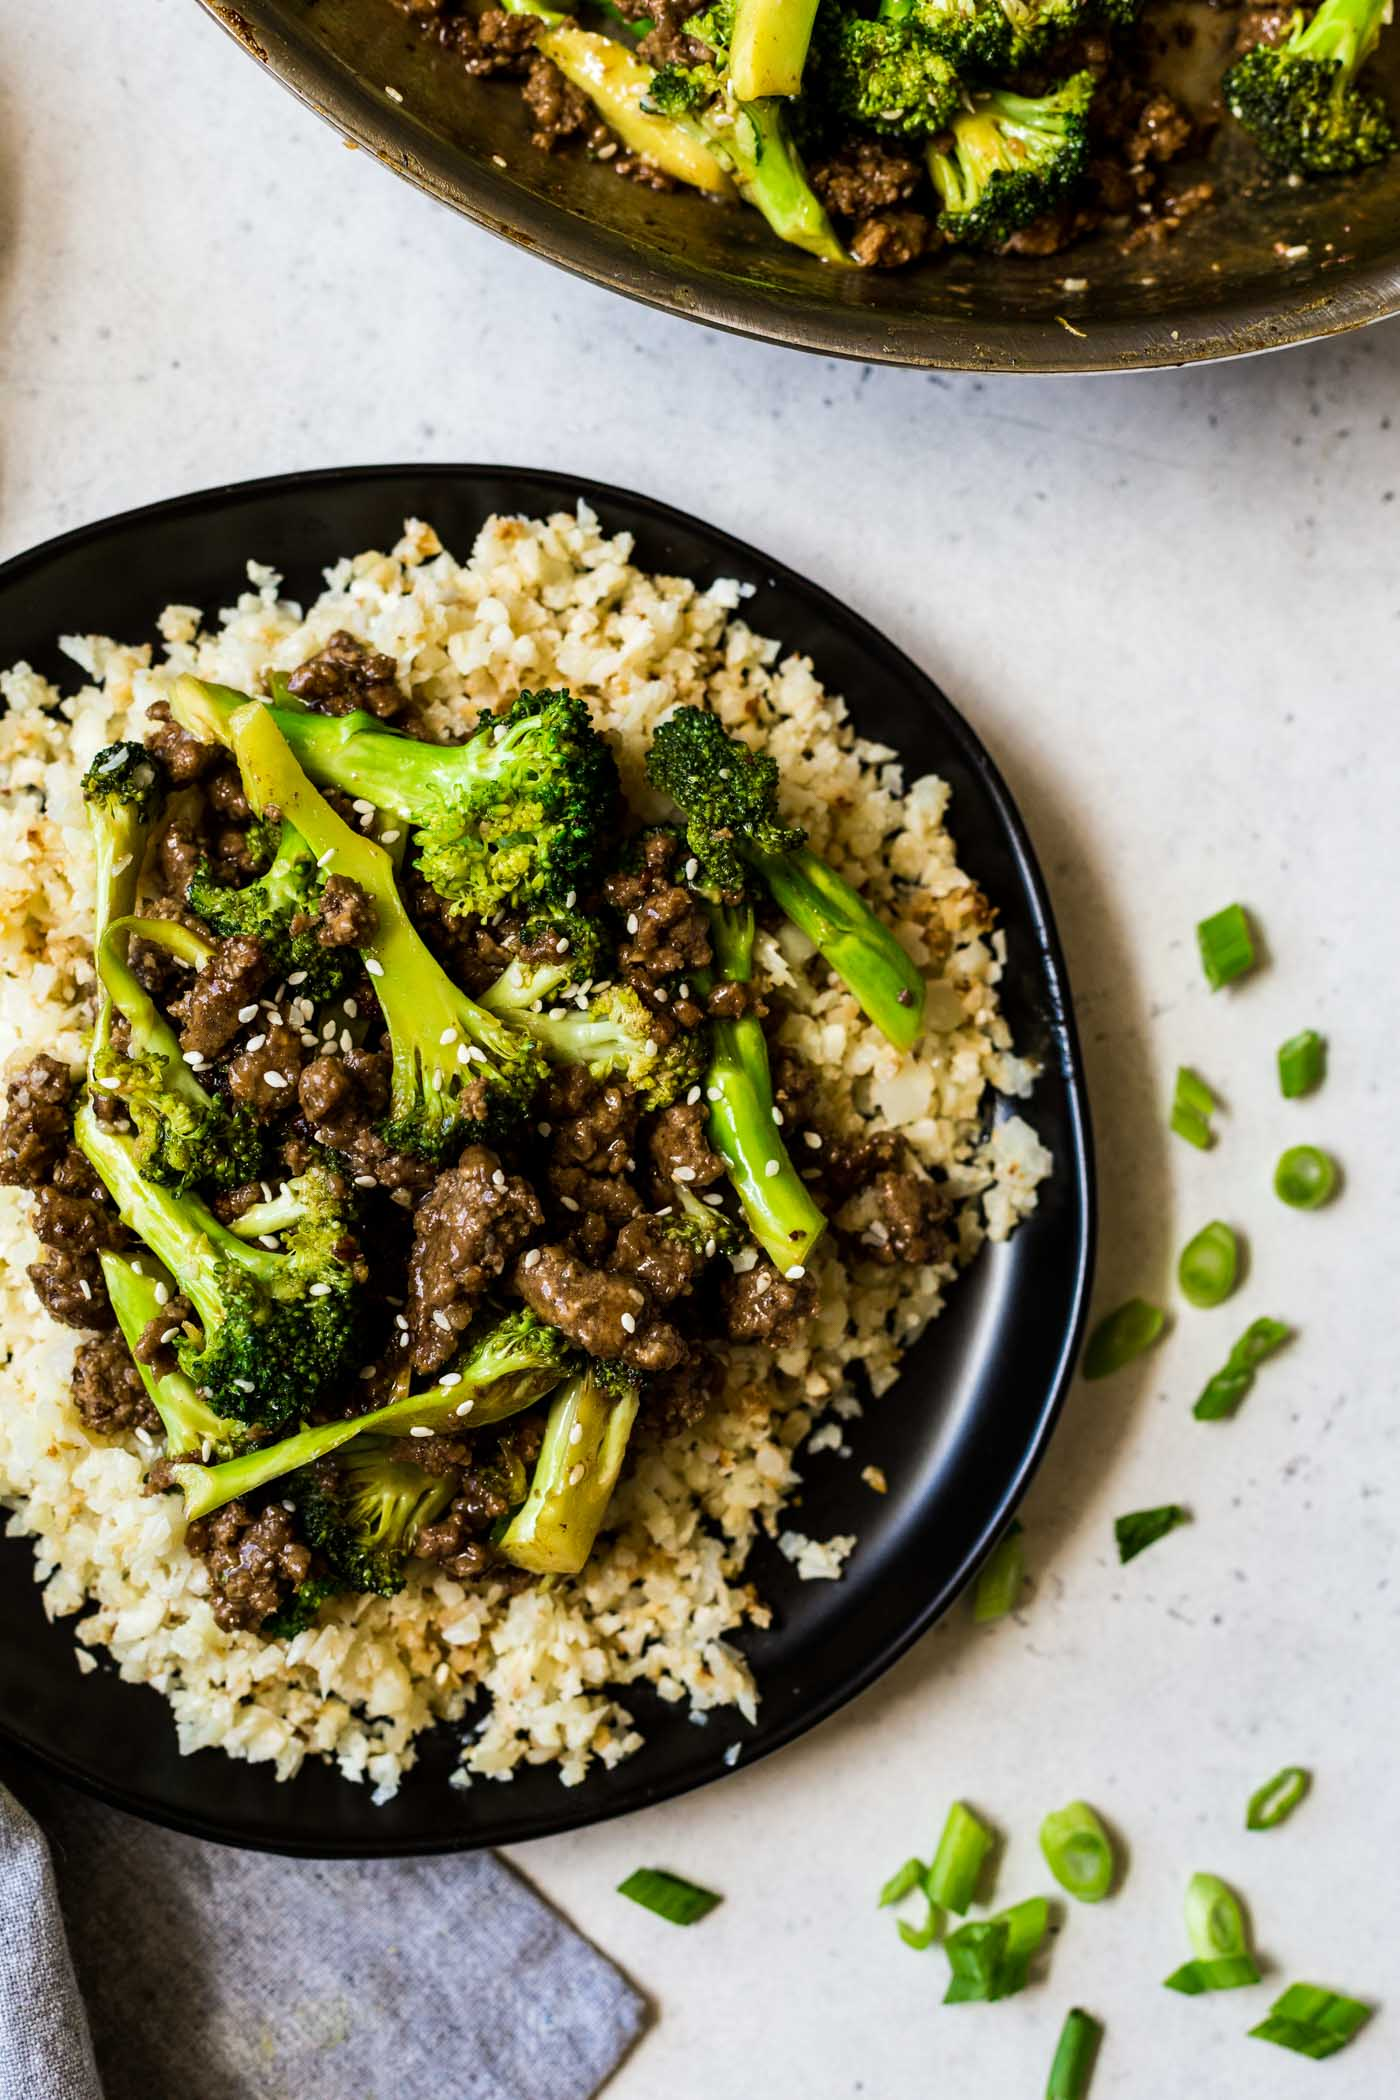 Black plate with cauliflower rice and ground beef and broccoli